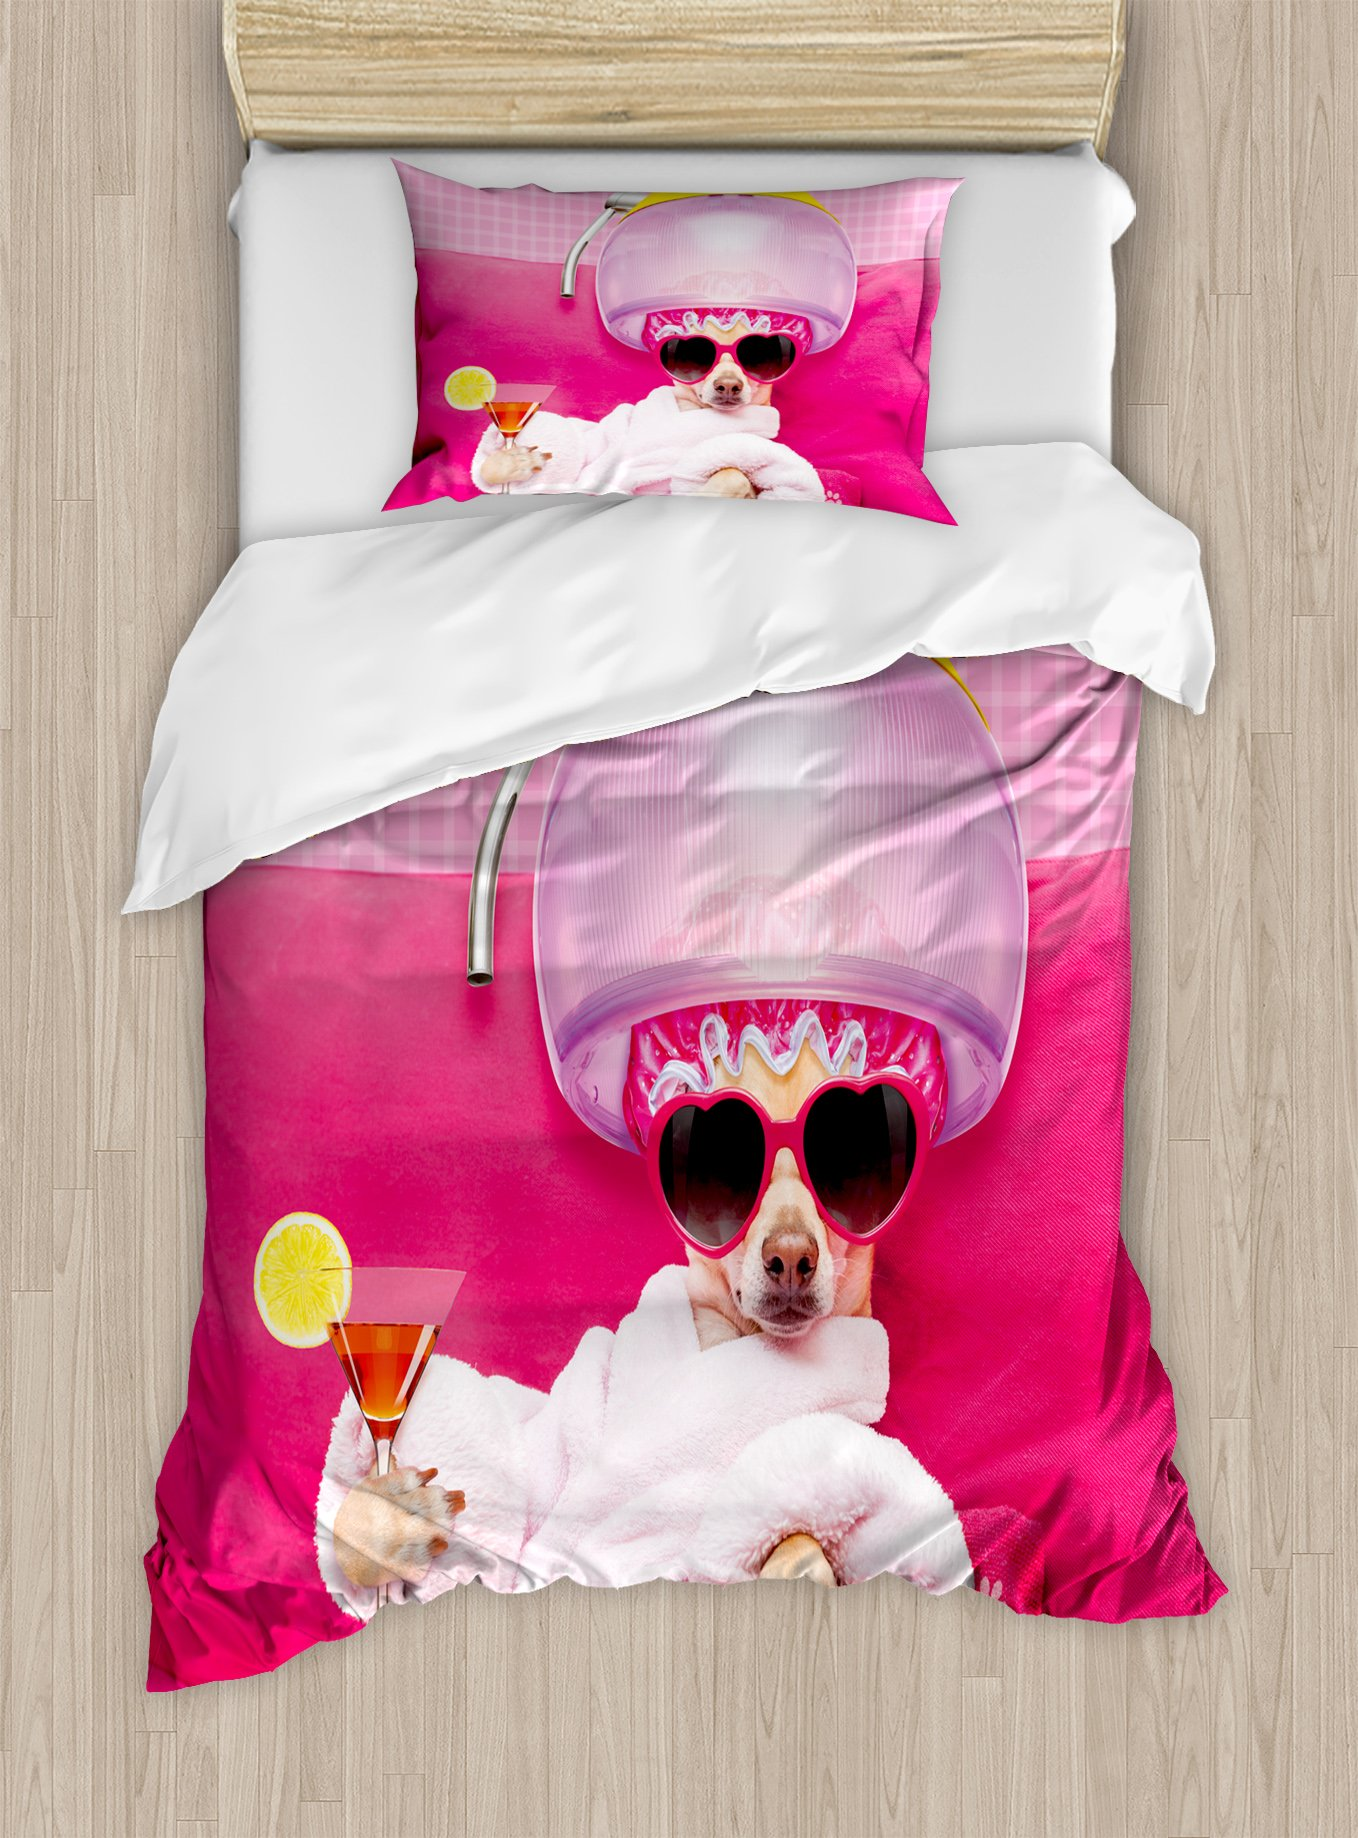 Ambesonne Funny Duvet Cover Set Twin Size, Chihuahua Dog Relaxing and Lying in Wellness Spa Fashion Puppy Comic Print, Decorative 2 Piece Bedding Set with 1 Pillow Sham, Magenta Baby Pink